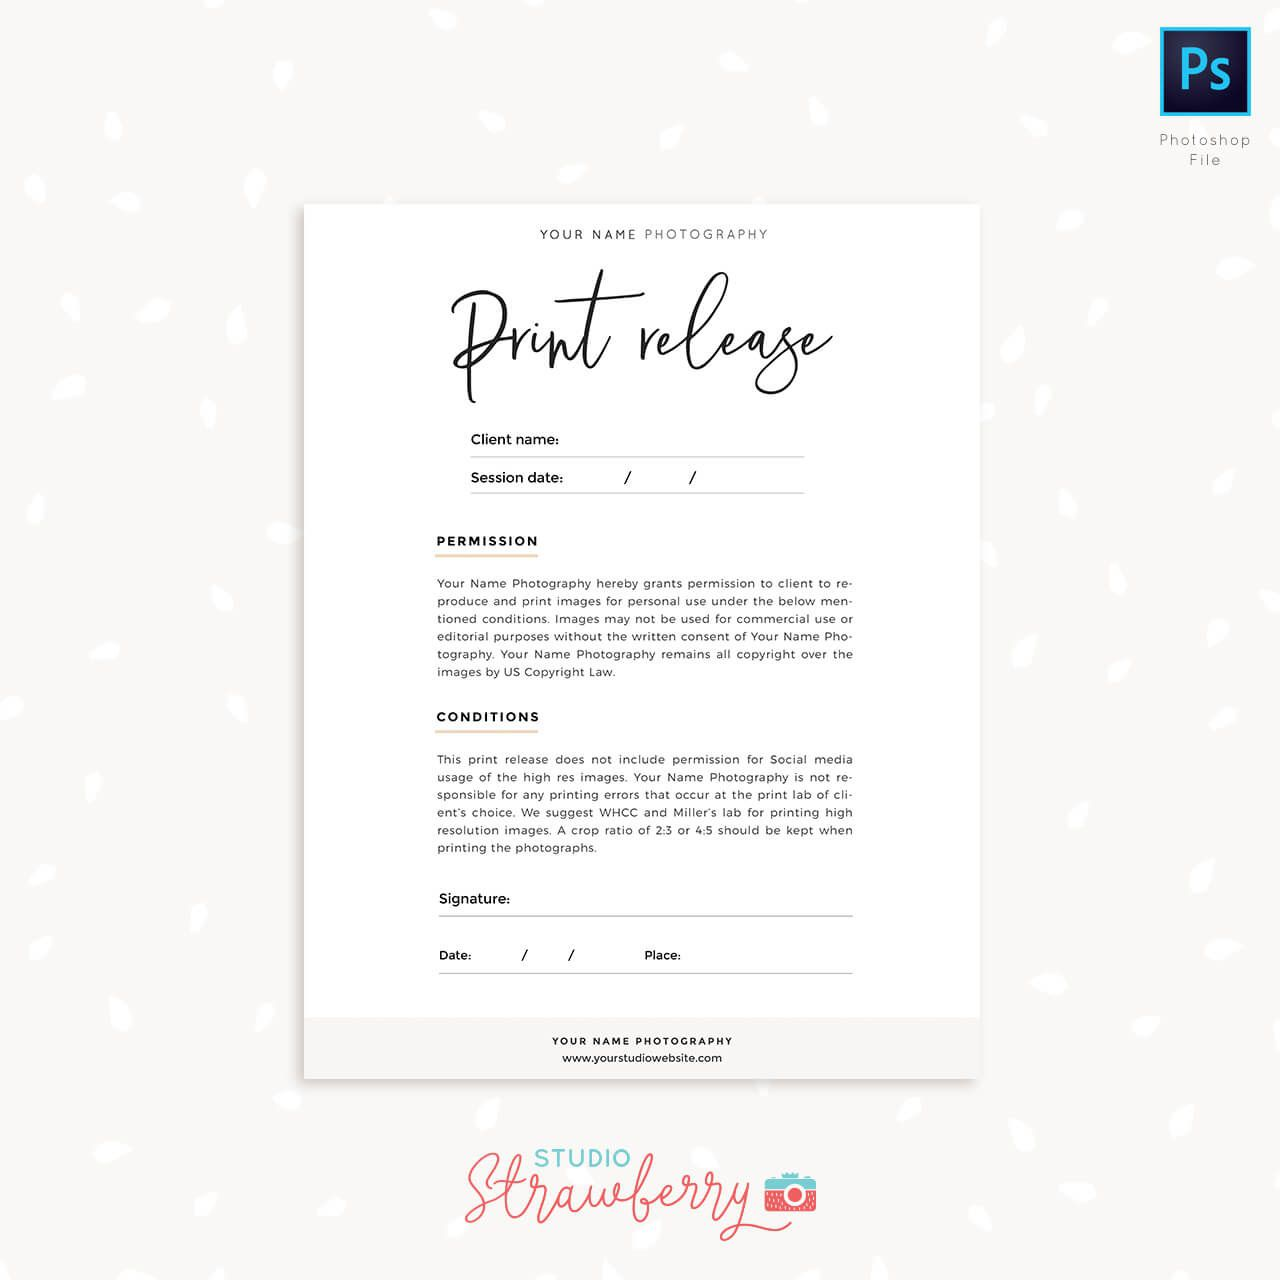 009 Excellent Photography Release Form Template Photo  Image Australia CanadaFull